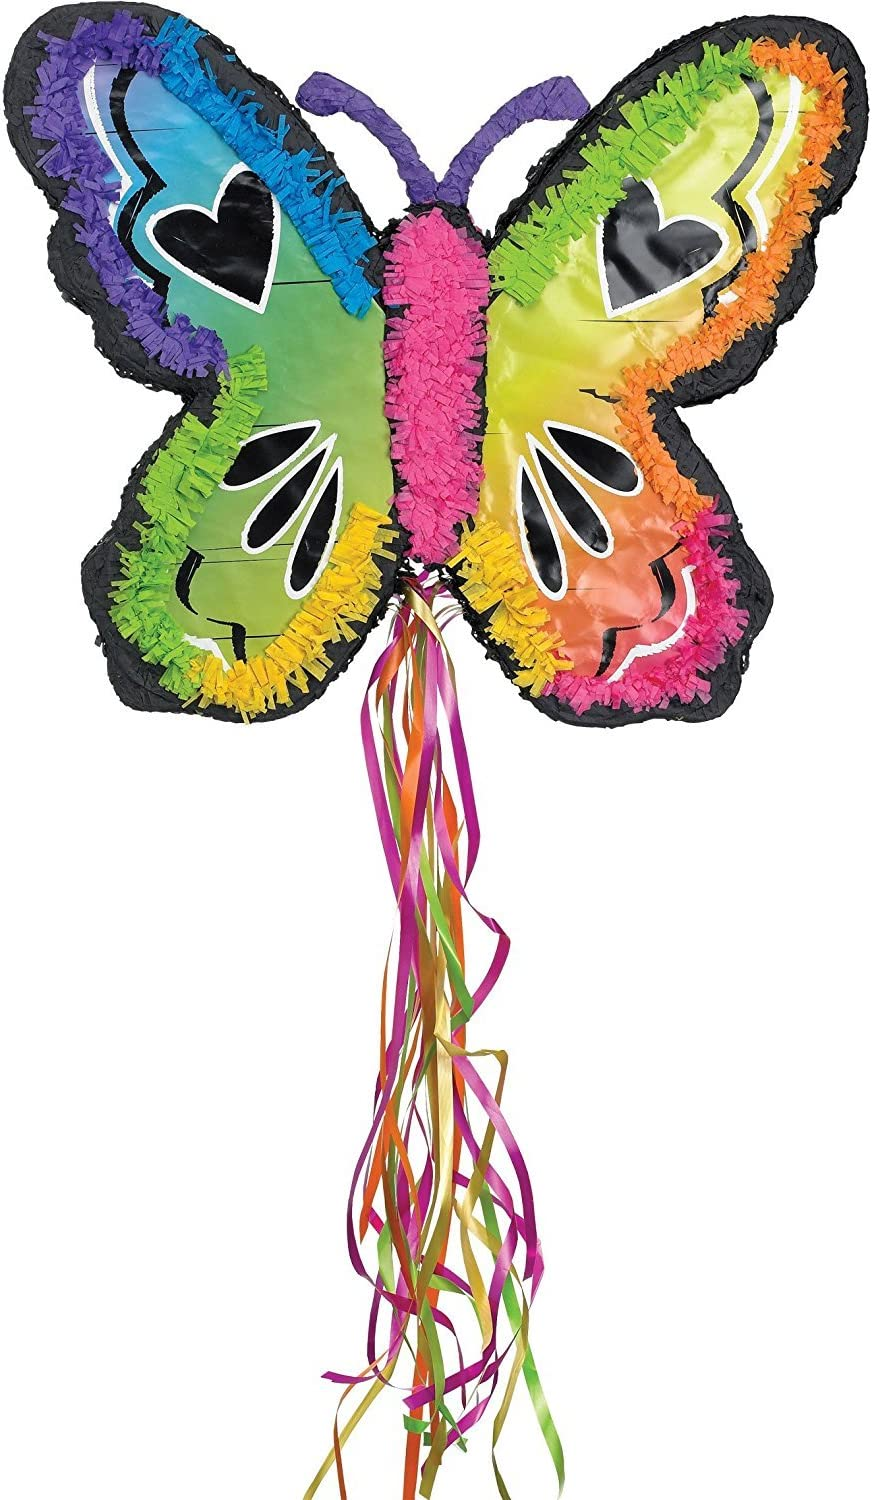 Ya Otta Pinata Neon Butterfly Mexican Style Birthday or Pool Party Supplies | Full Sized for Chocolate, Candy Filling | Celebrations, Parties, Cinco de Mayo, Fiestas